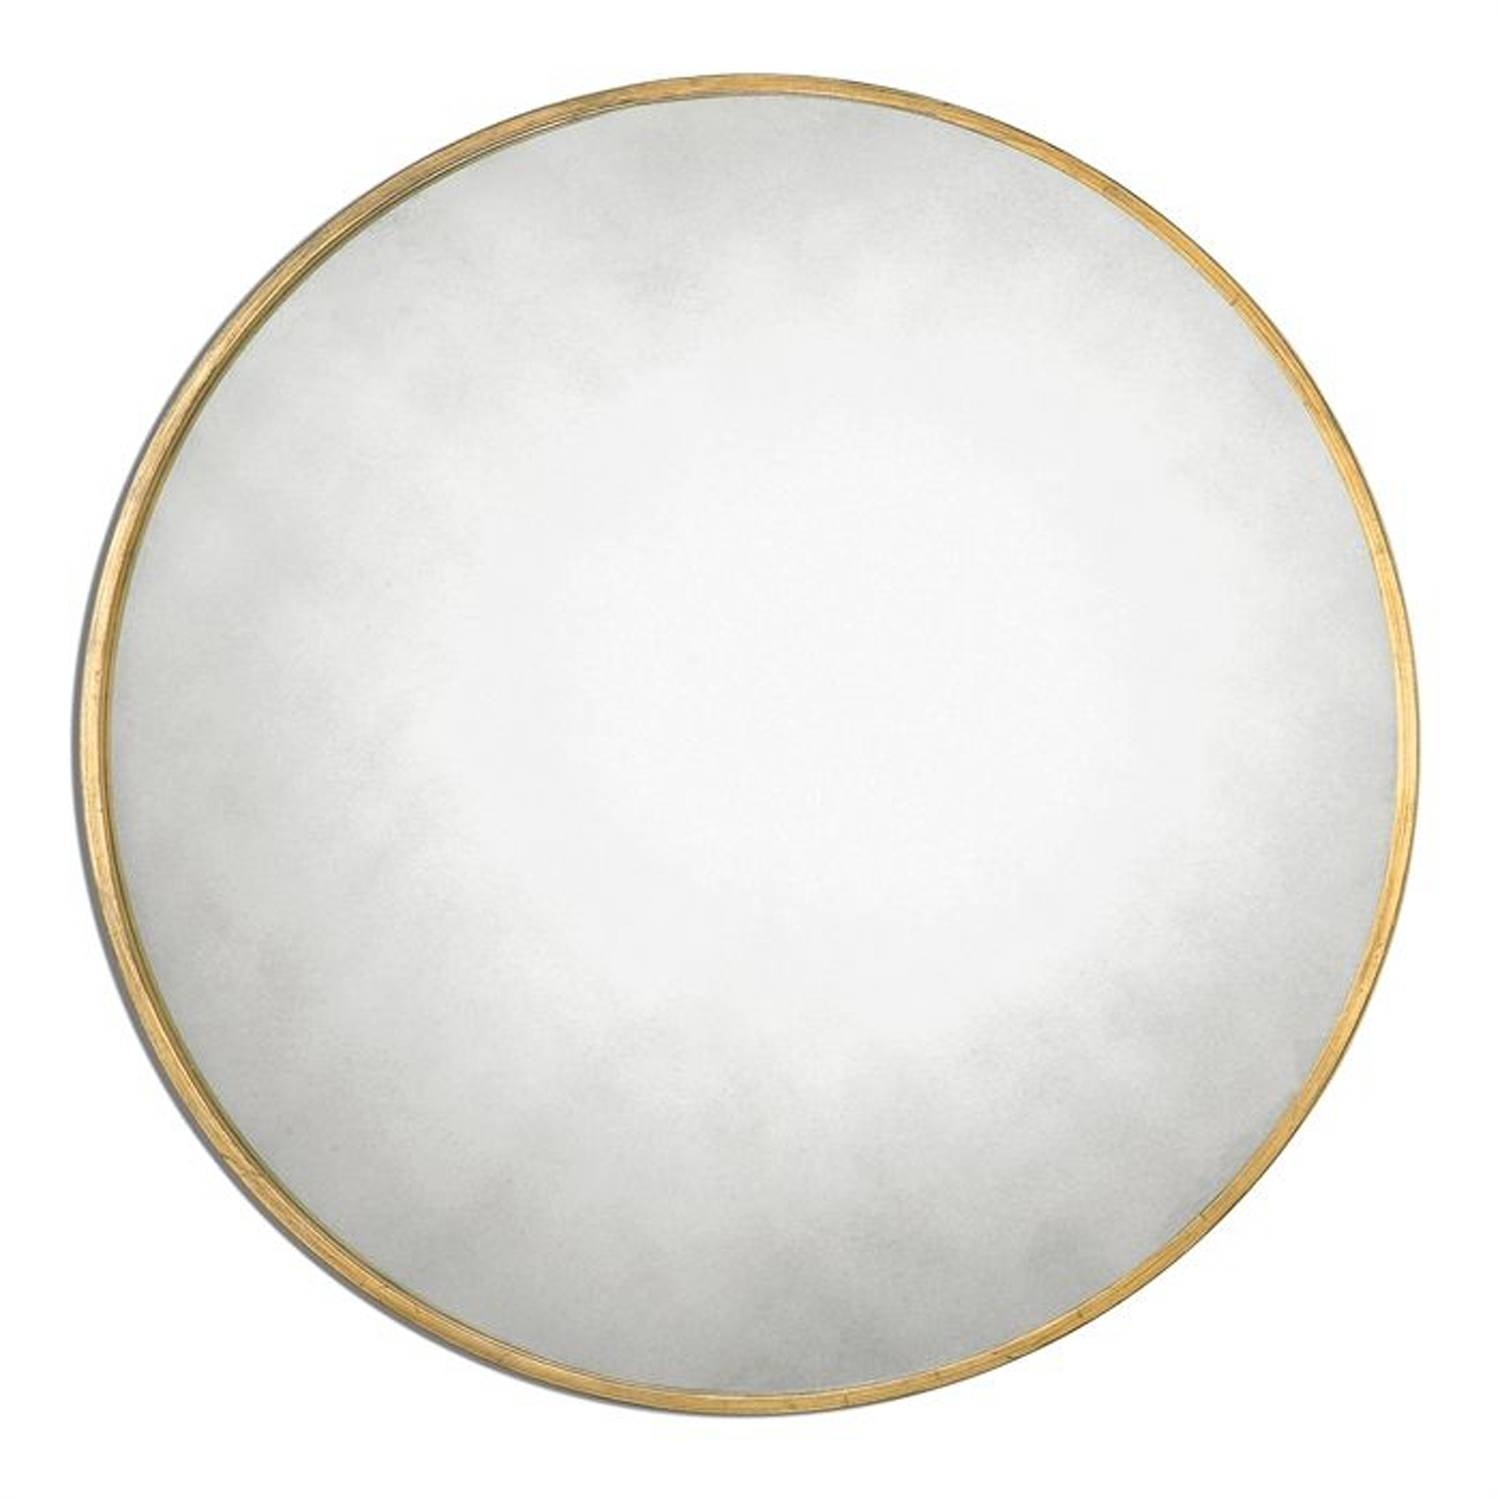 Junius Round Gold Round Mirror Uttermost Wall Mirror Mirrors Home in Large Circular Mirrors (Image 10 of 25)